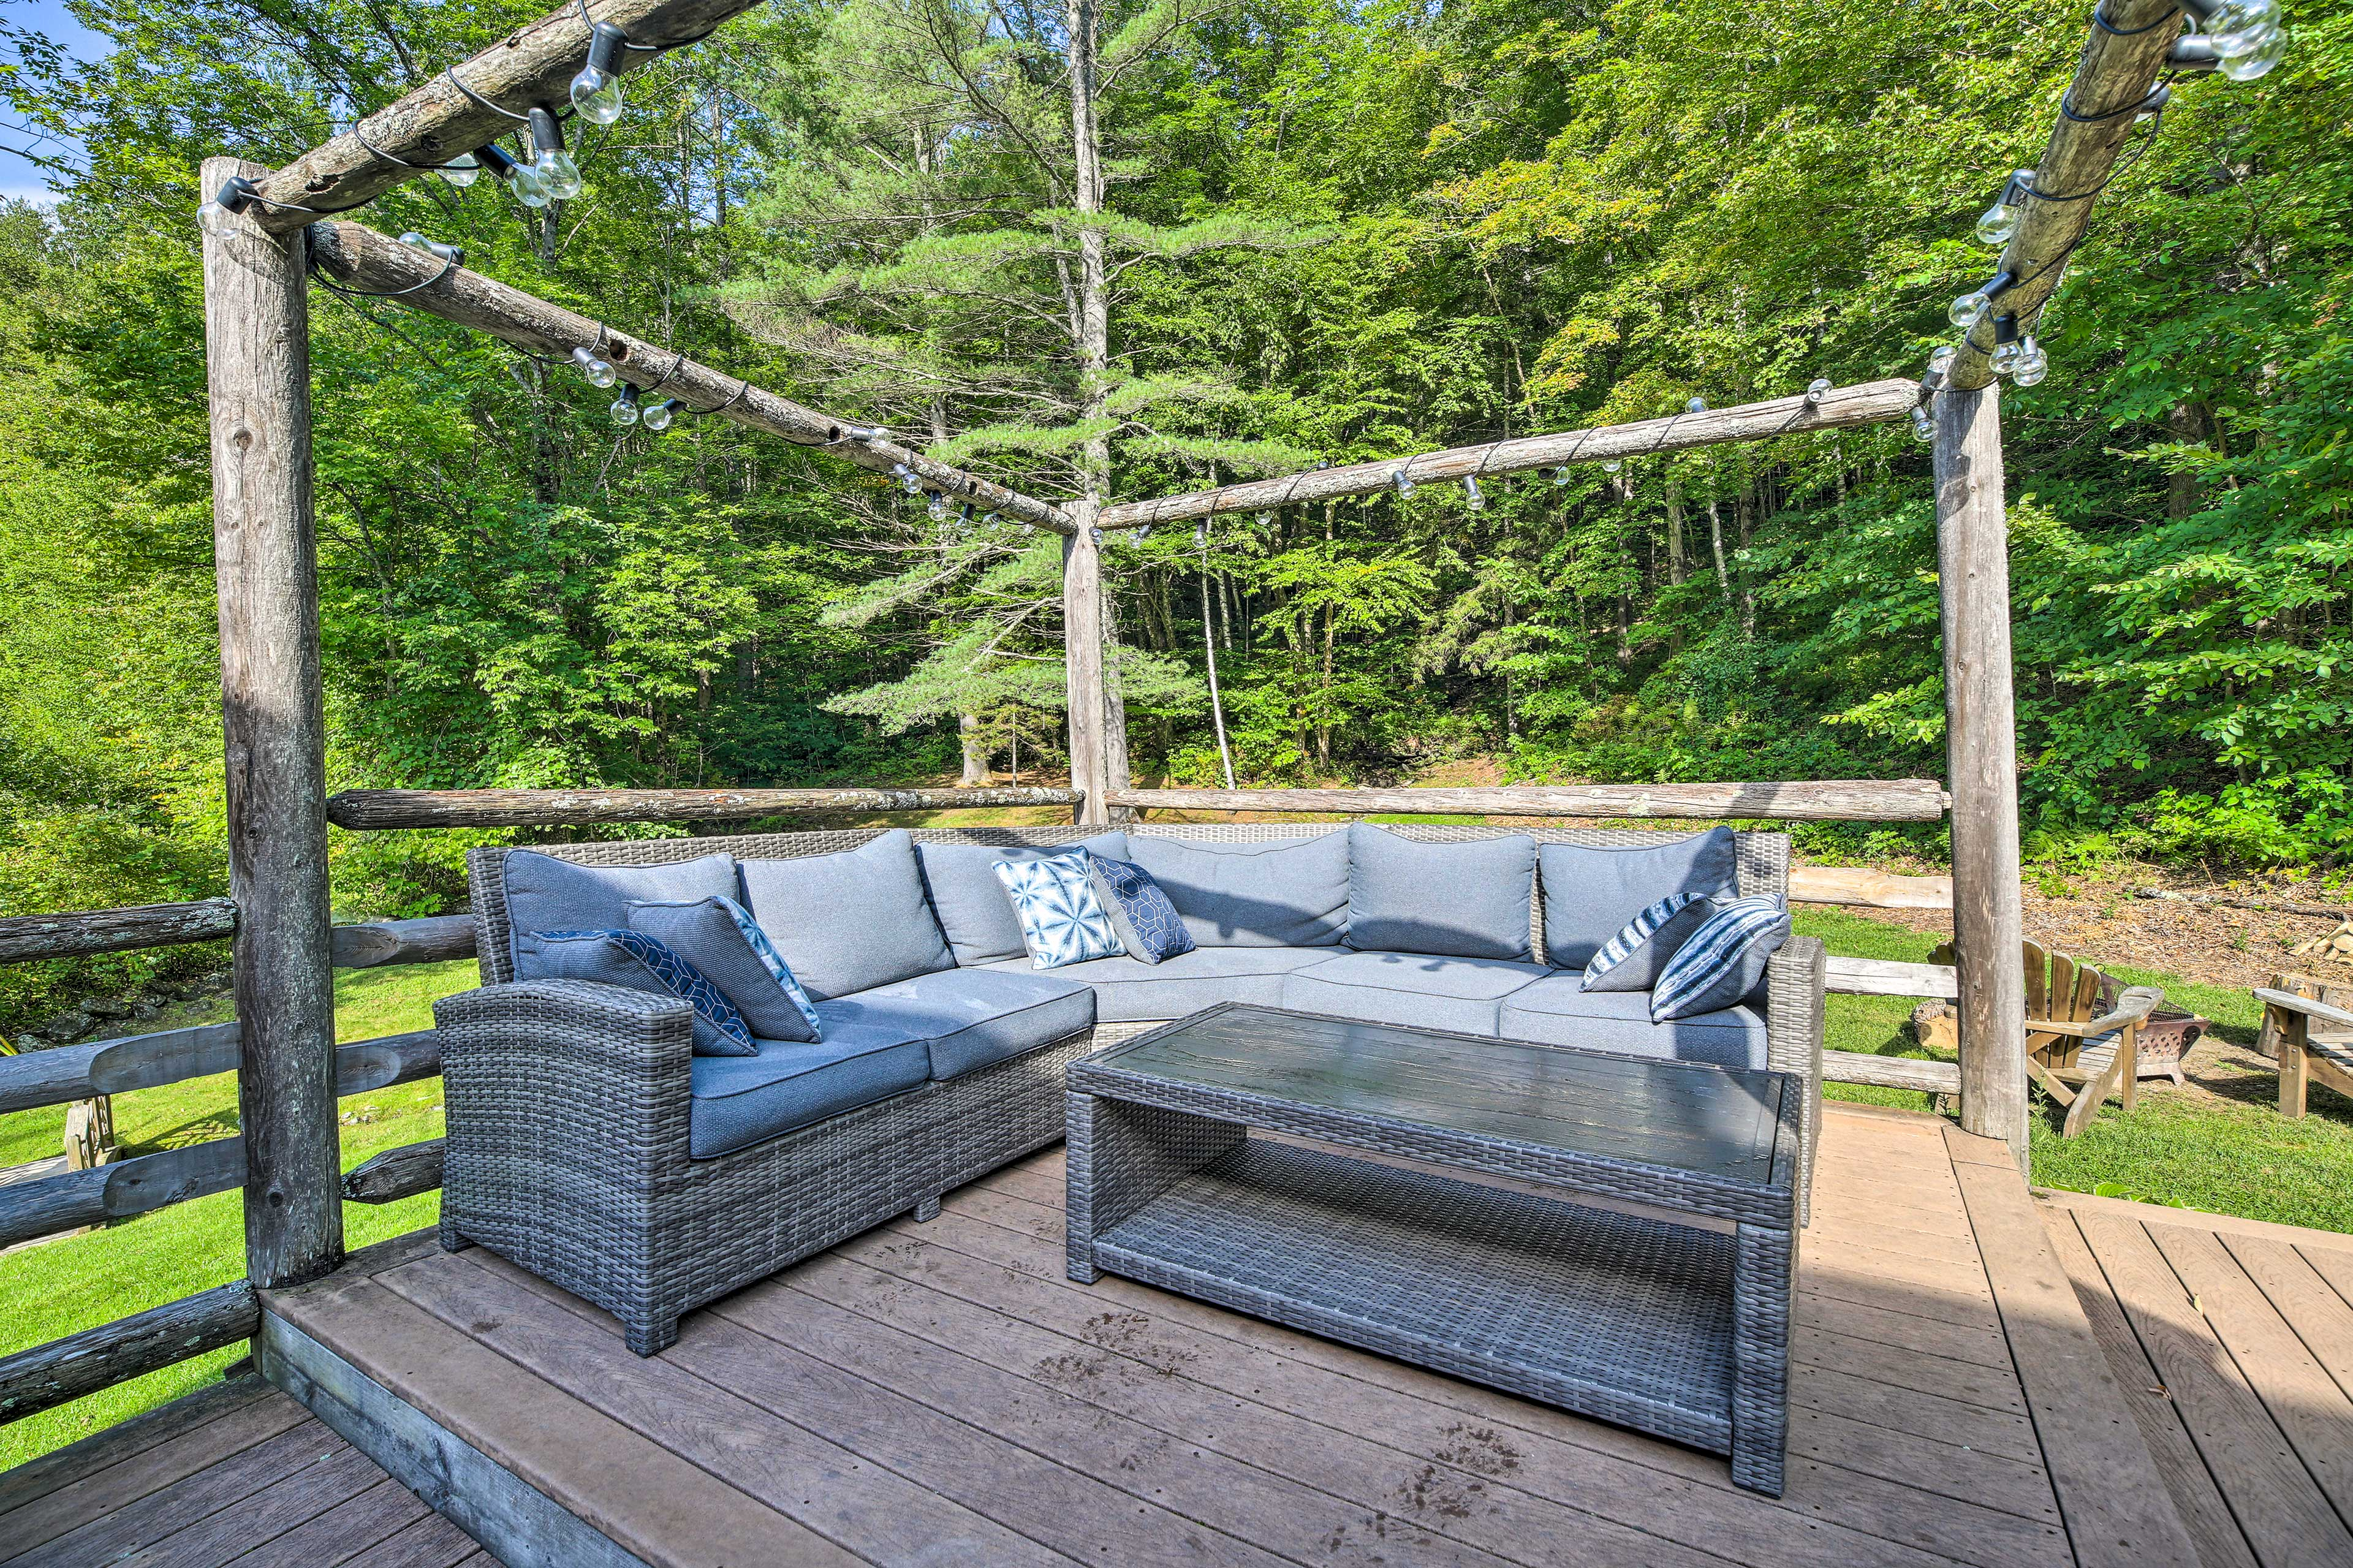 The new outdoor furniture offers plenty of seating space.